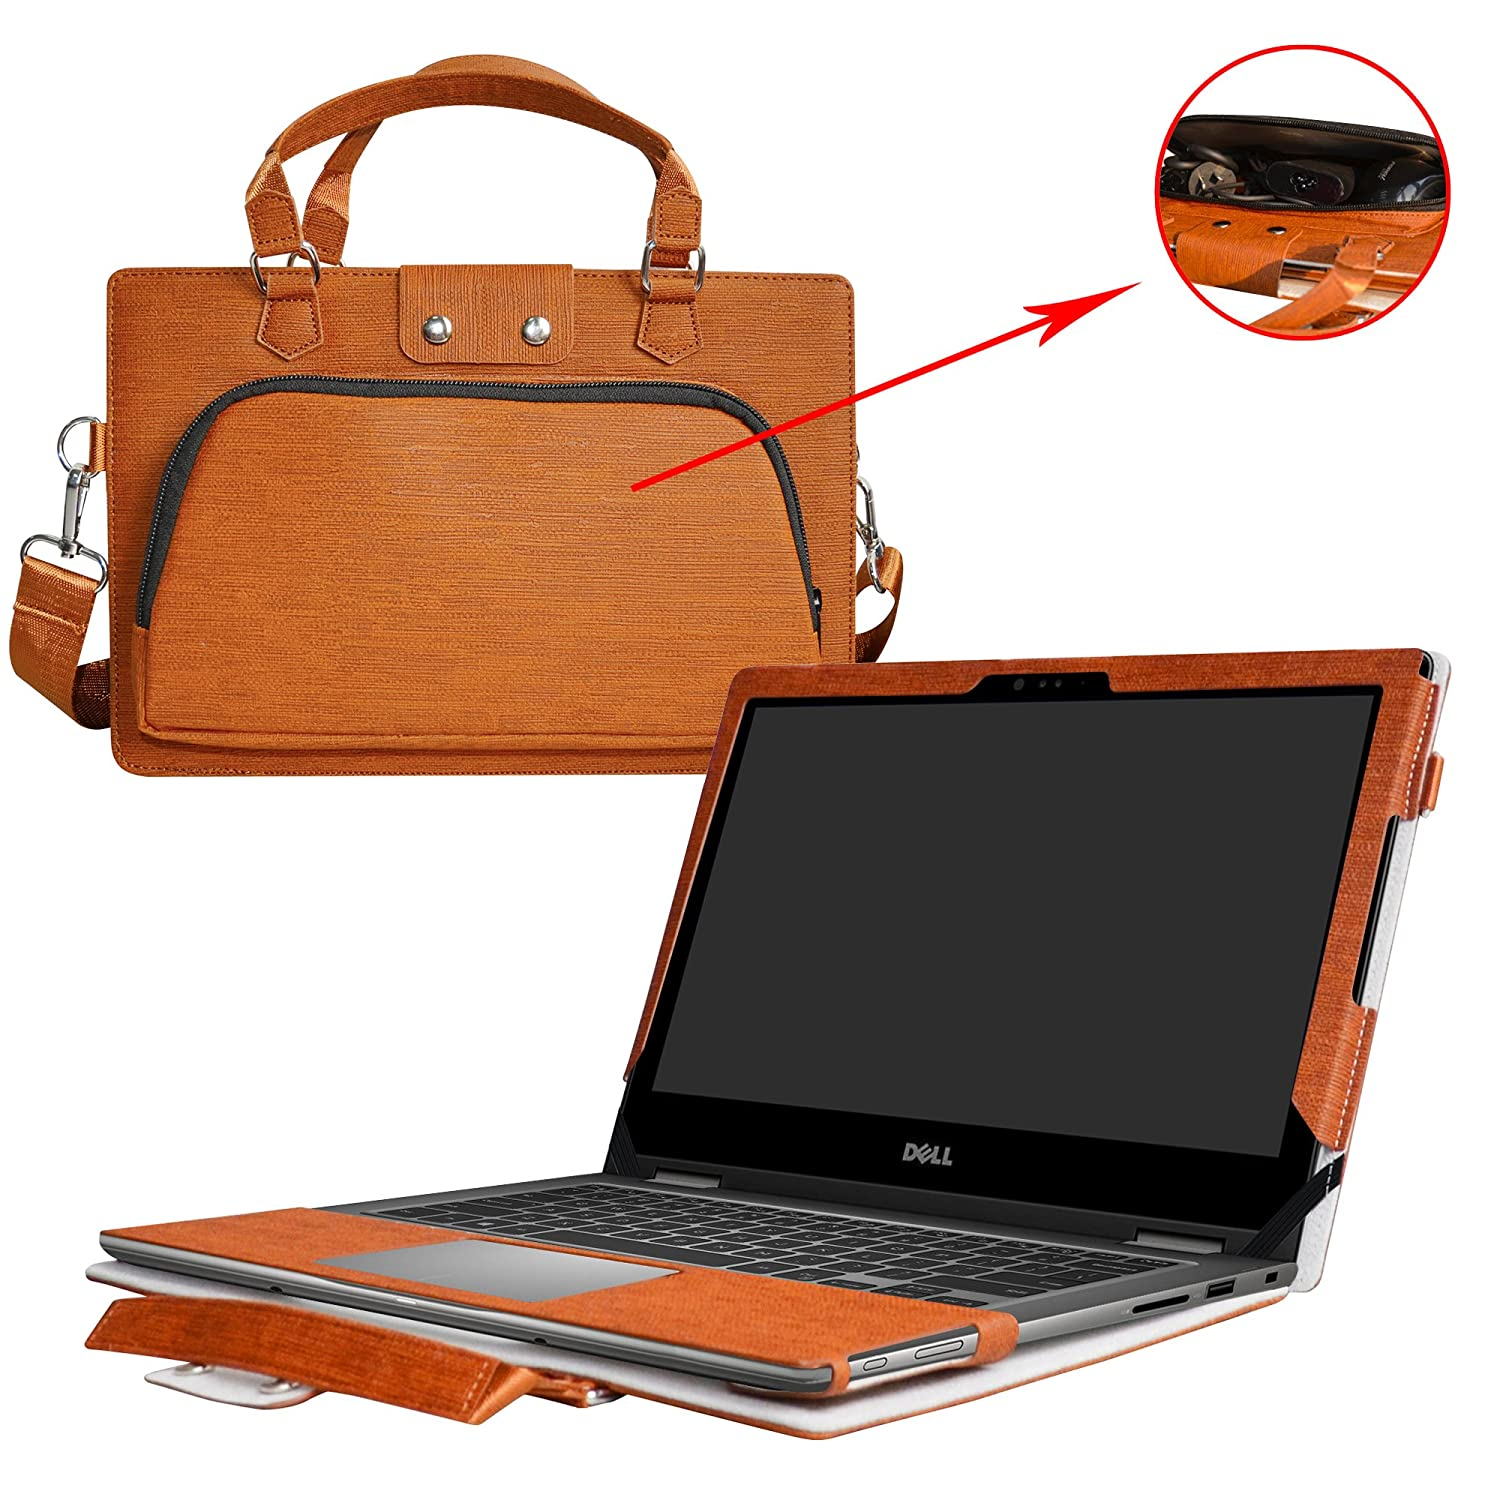 Amazon.com: Latitude 14 7480 Case,2 in 1 Accurately Designed Protective PU Cover + Portable Carrying Bag for 14